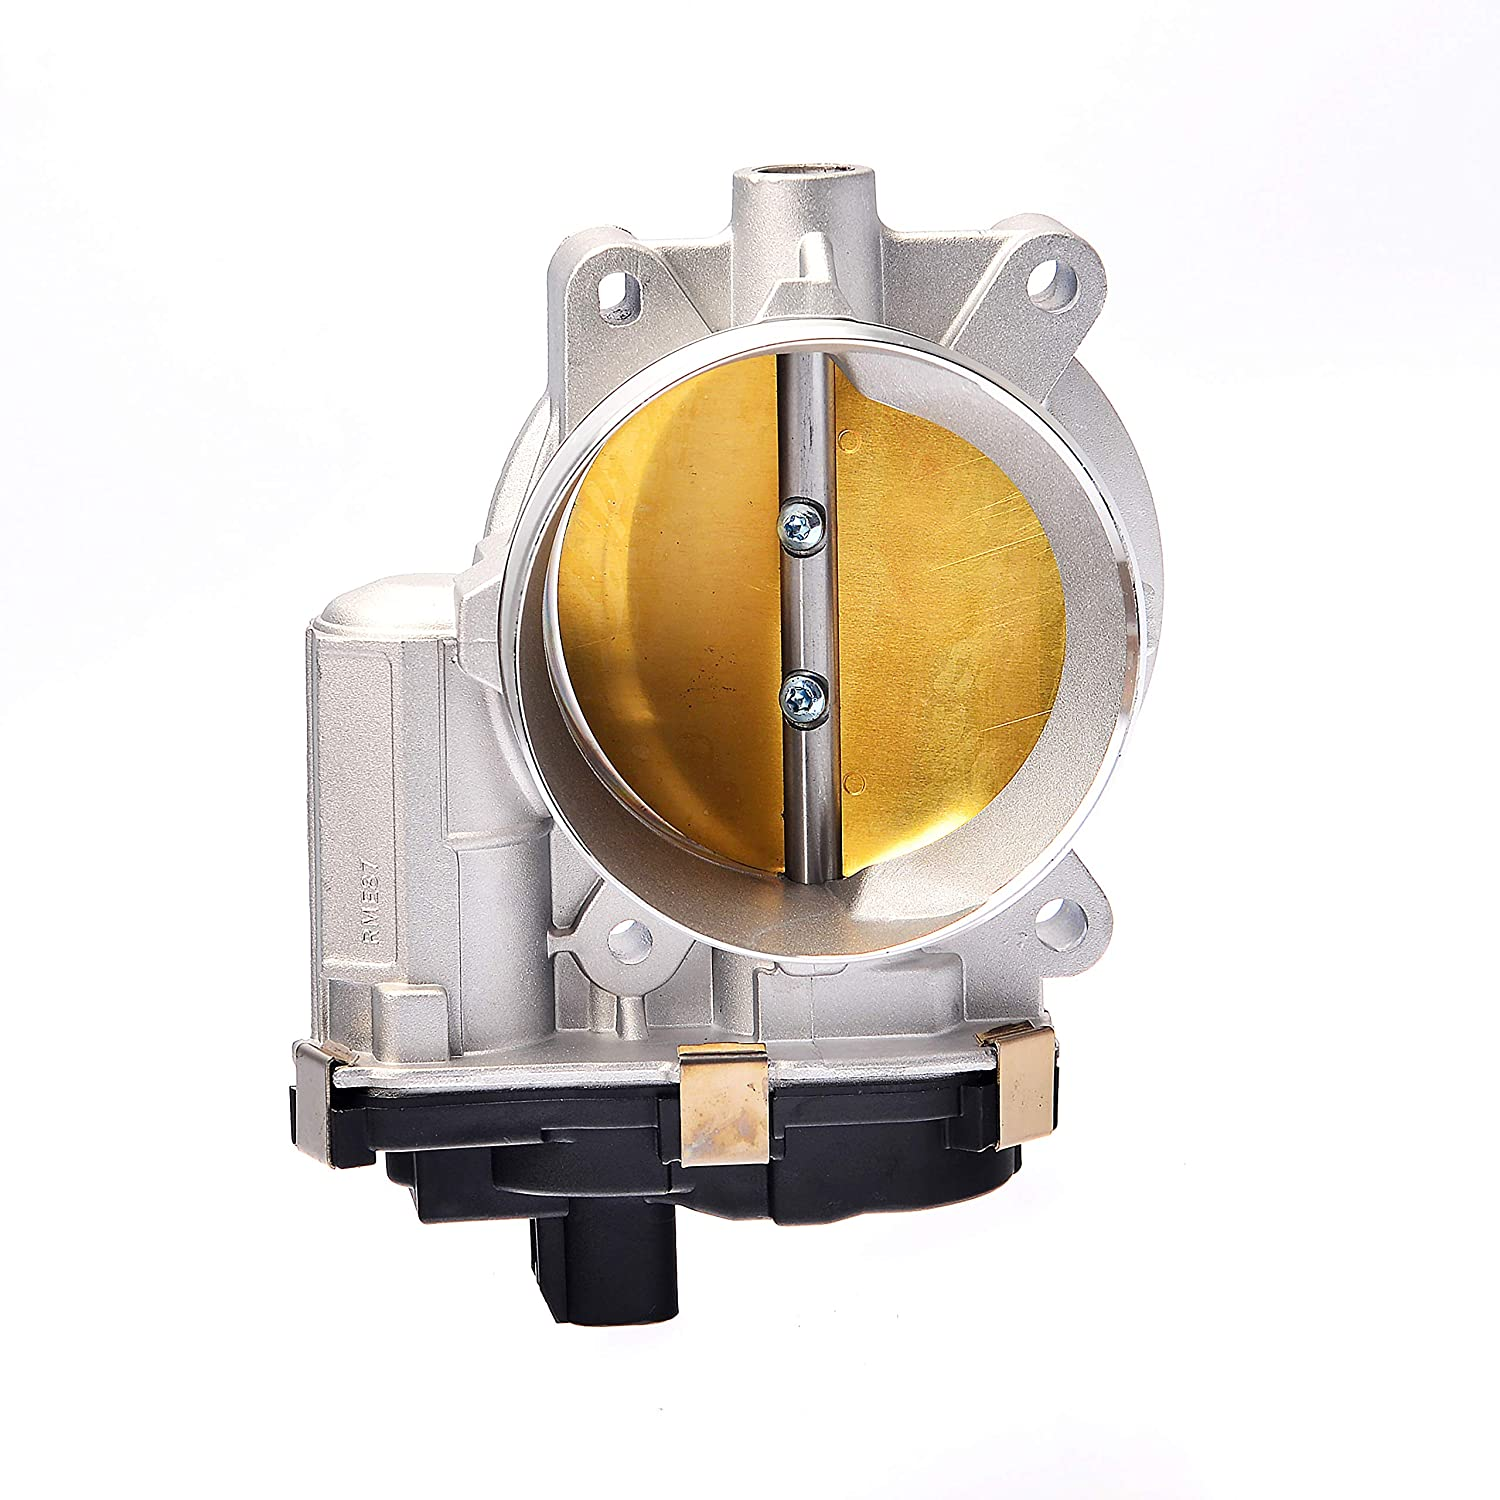 Tecoom 12580760 Professional Electronic Throttle Body Assembly for Saab 9-7X Buick Rainier Cadillac Escalade Chevrolet Pickup 5.3L 6.0L 6.2L